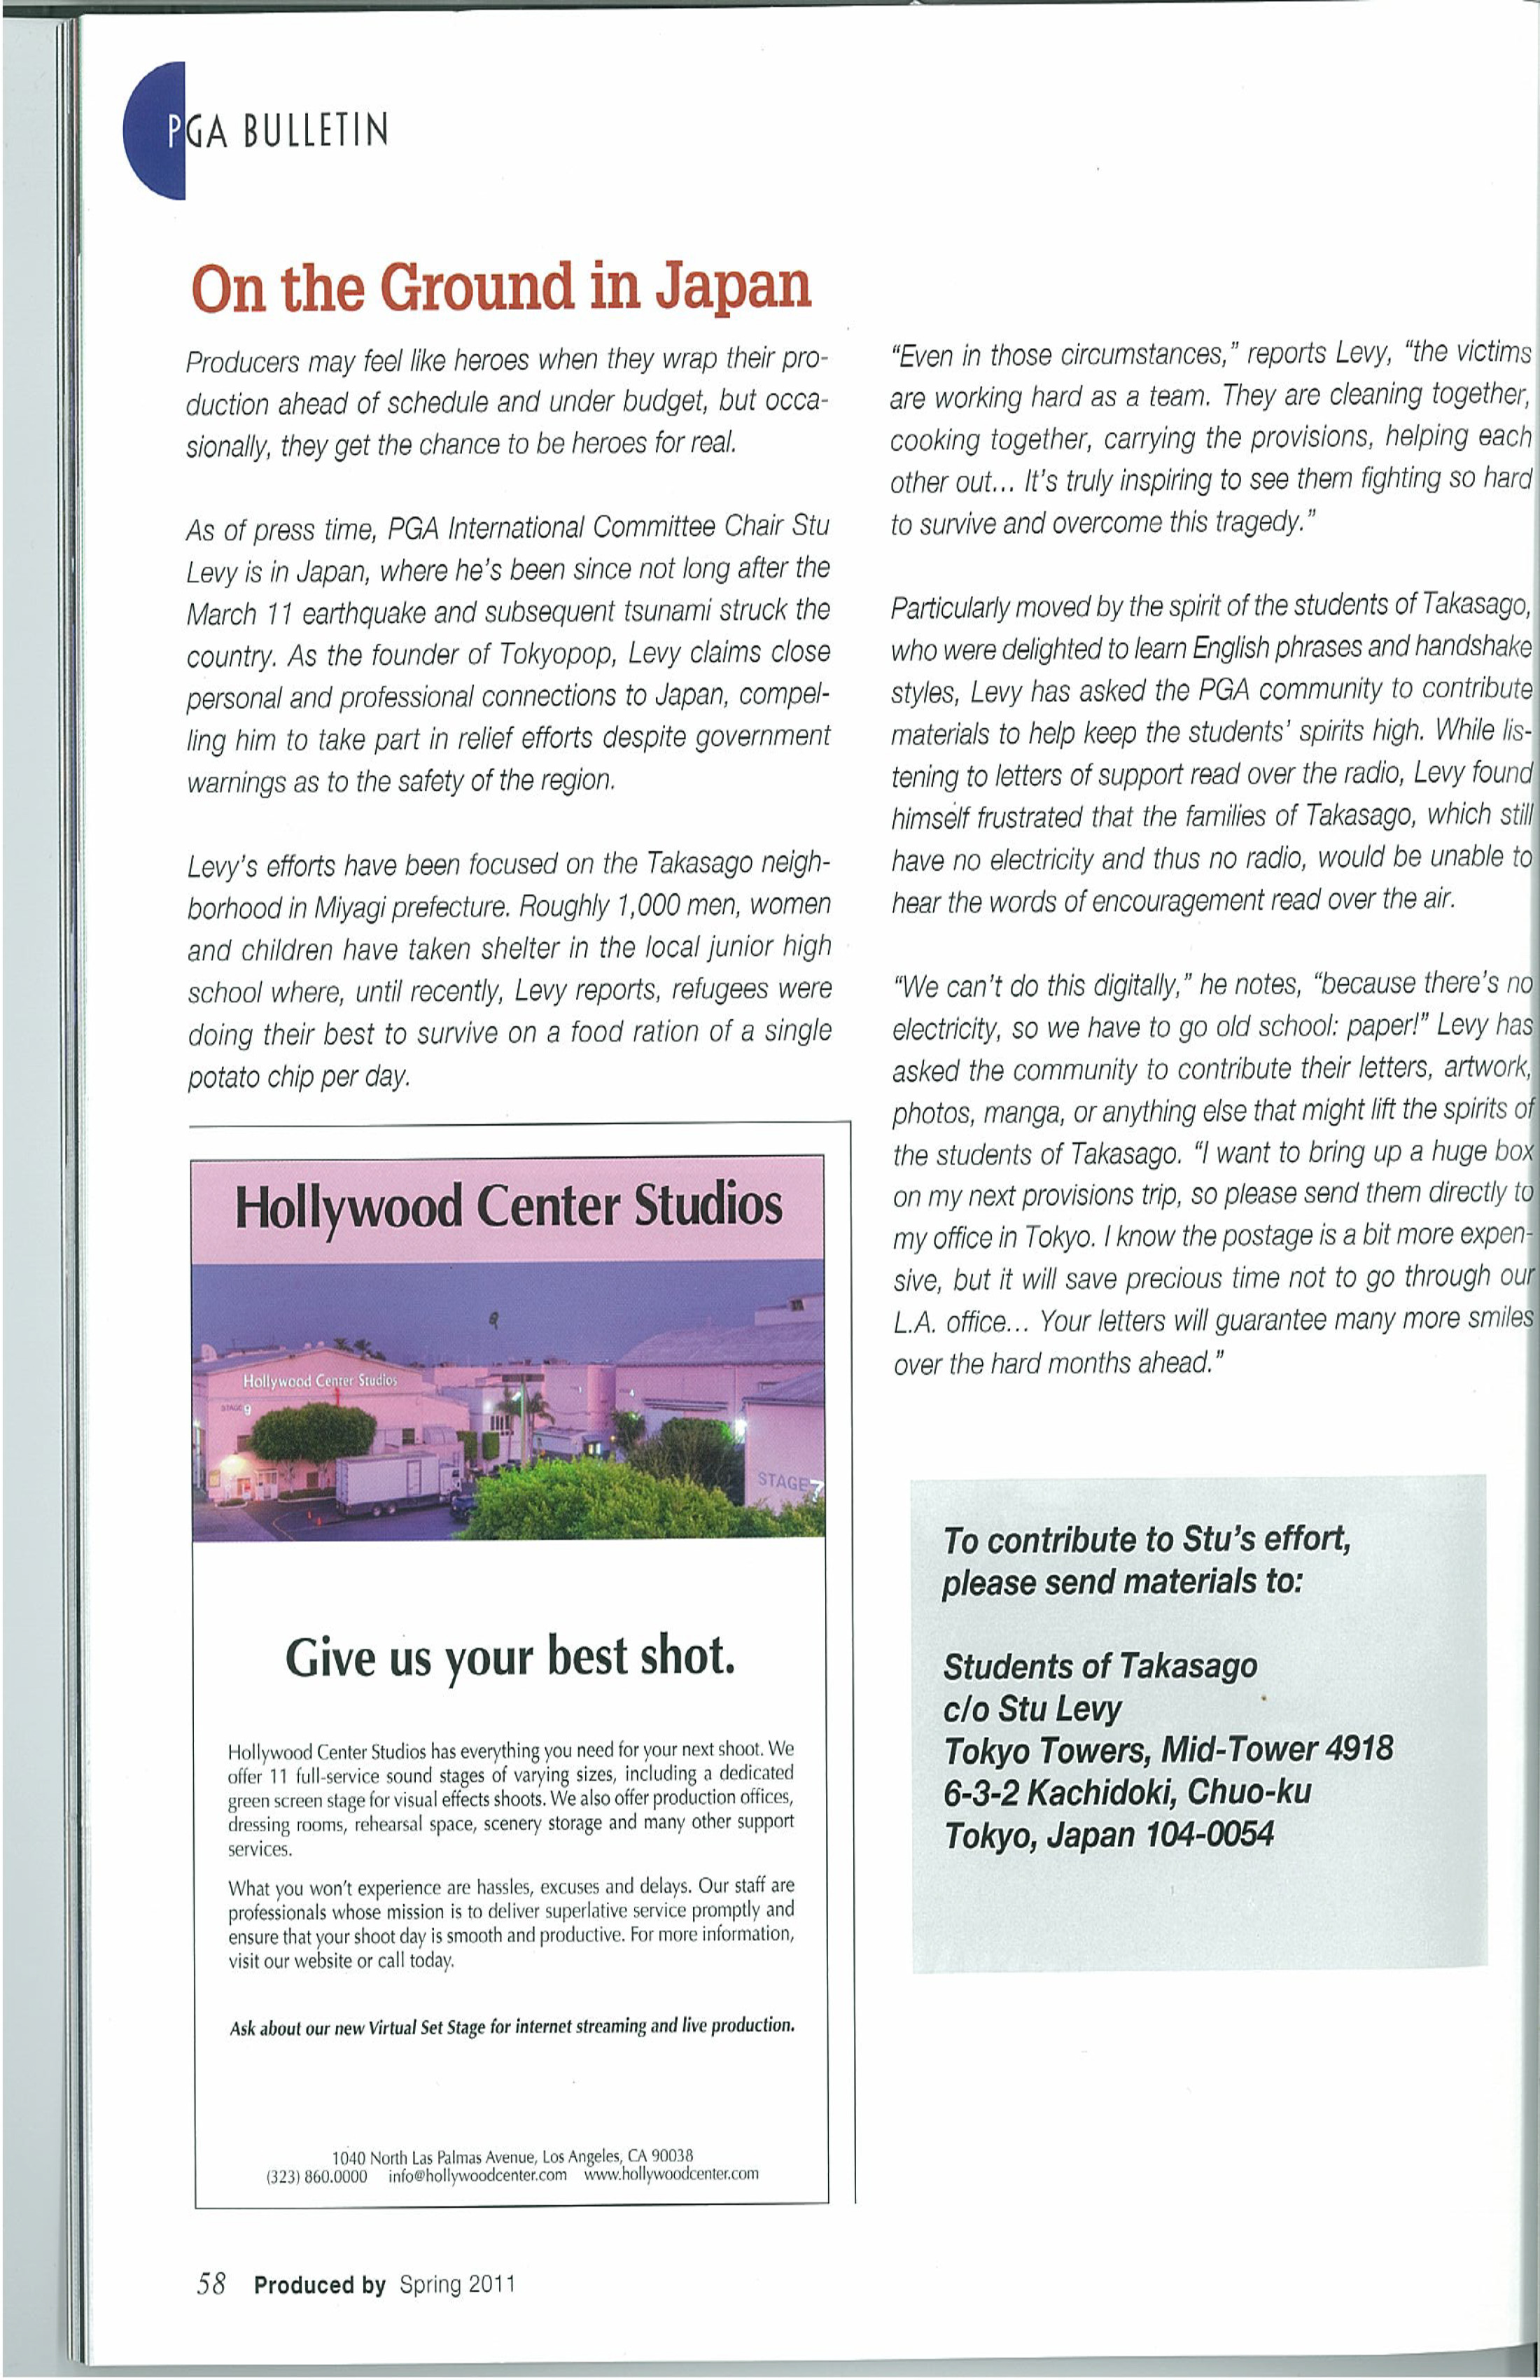 Article in PGA Bulliten Magazine